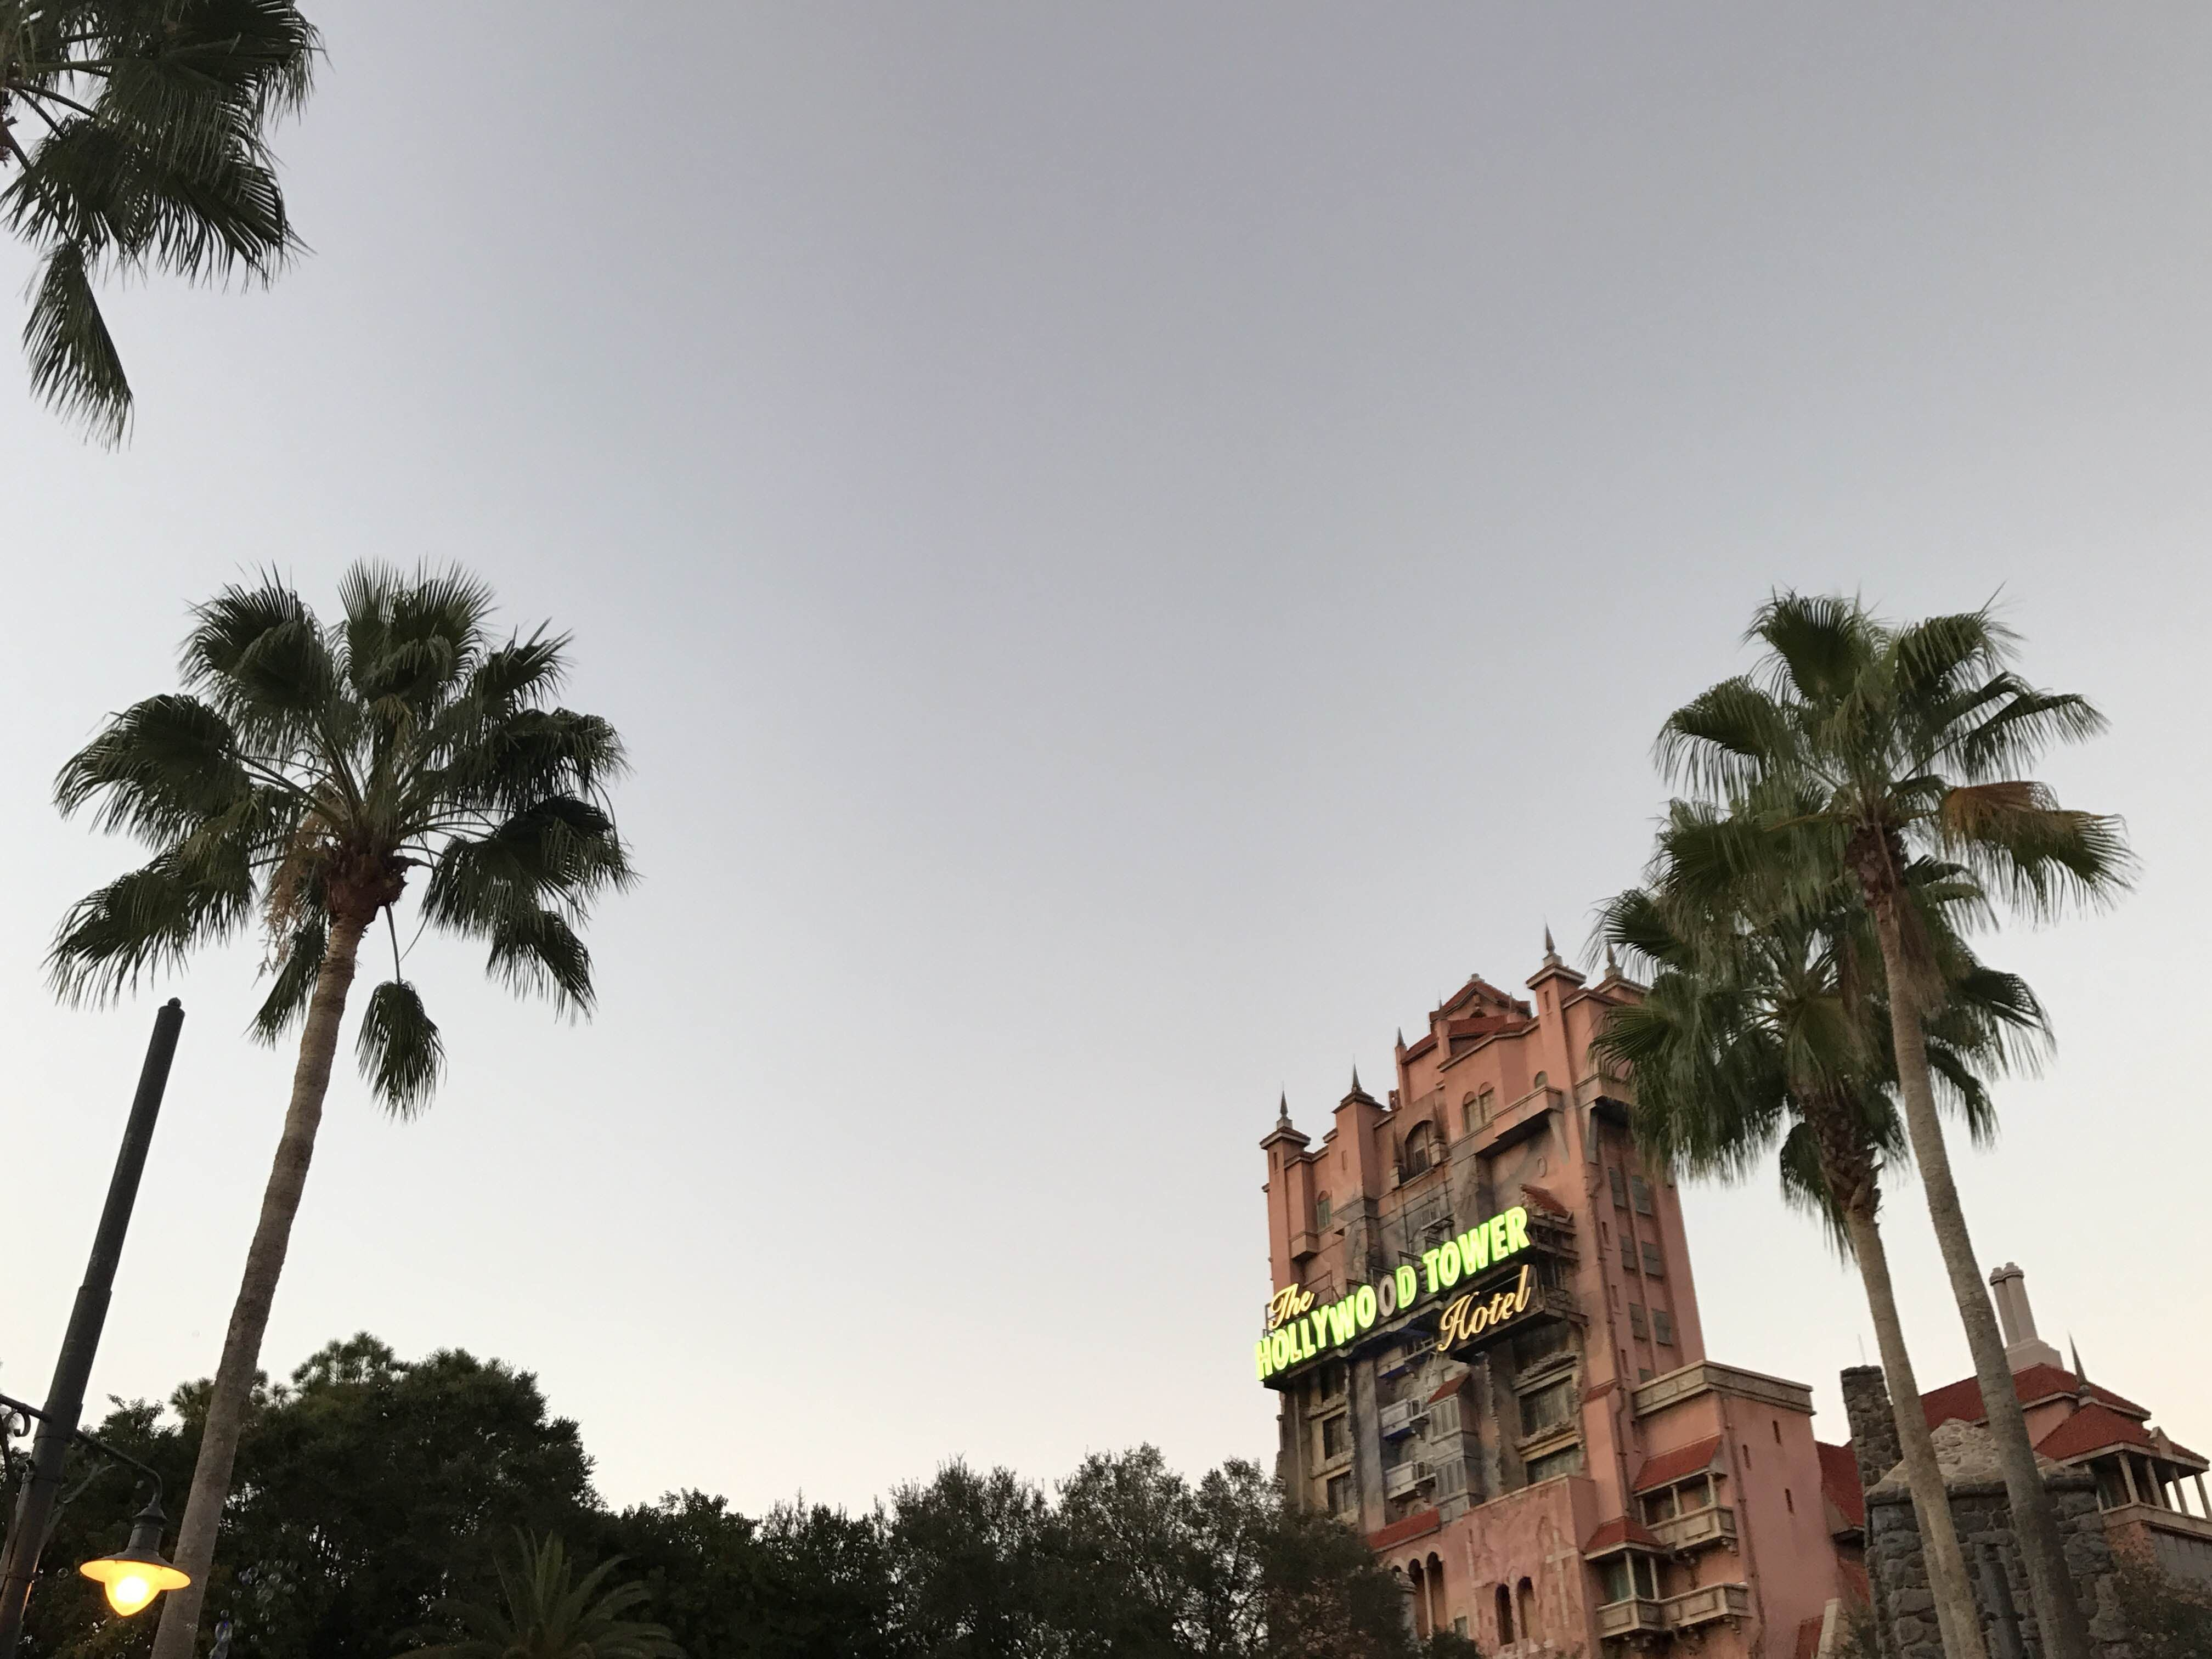 DisneyWorld Downtown